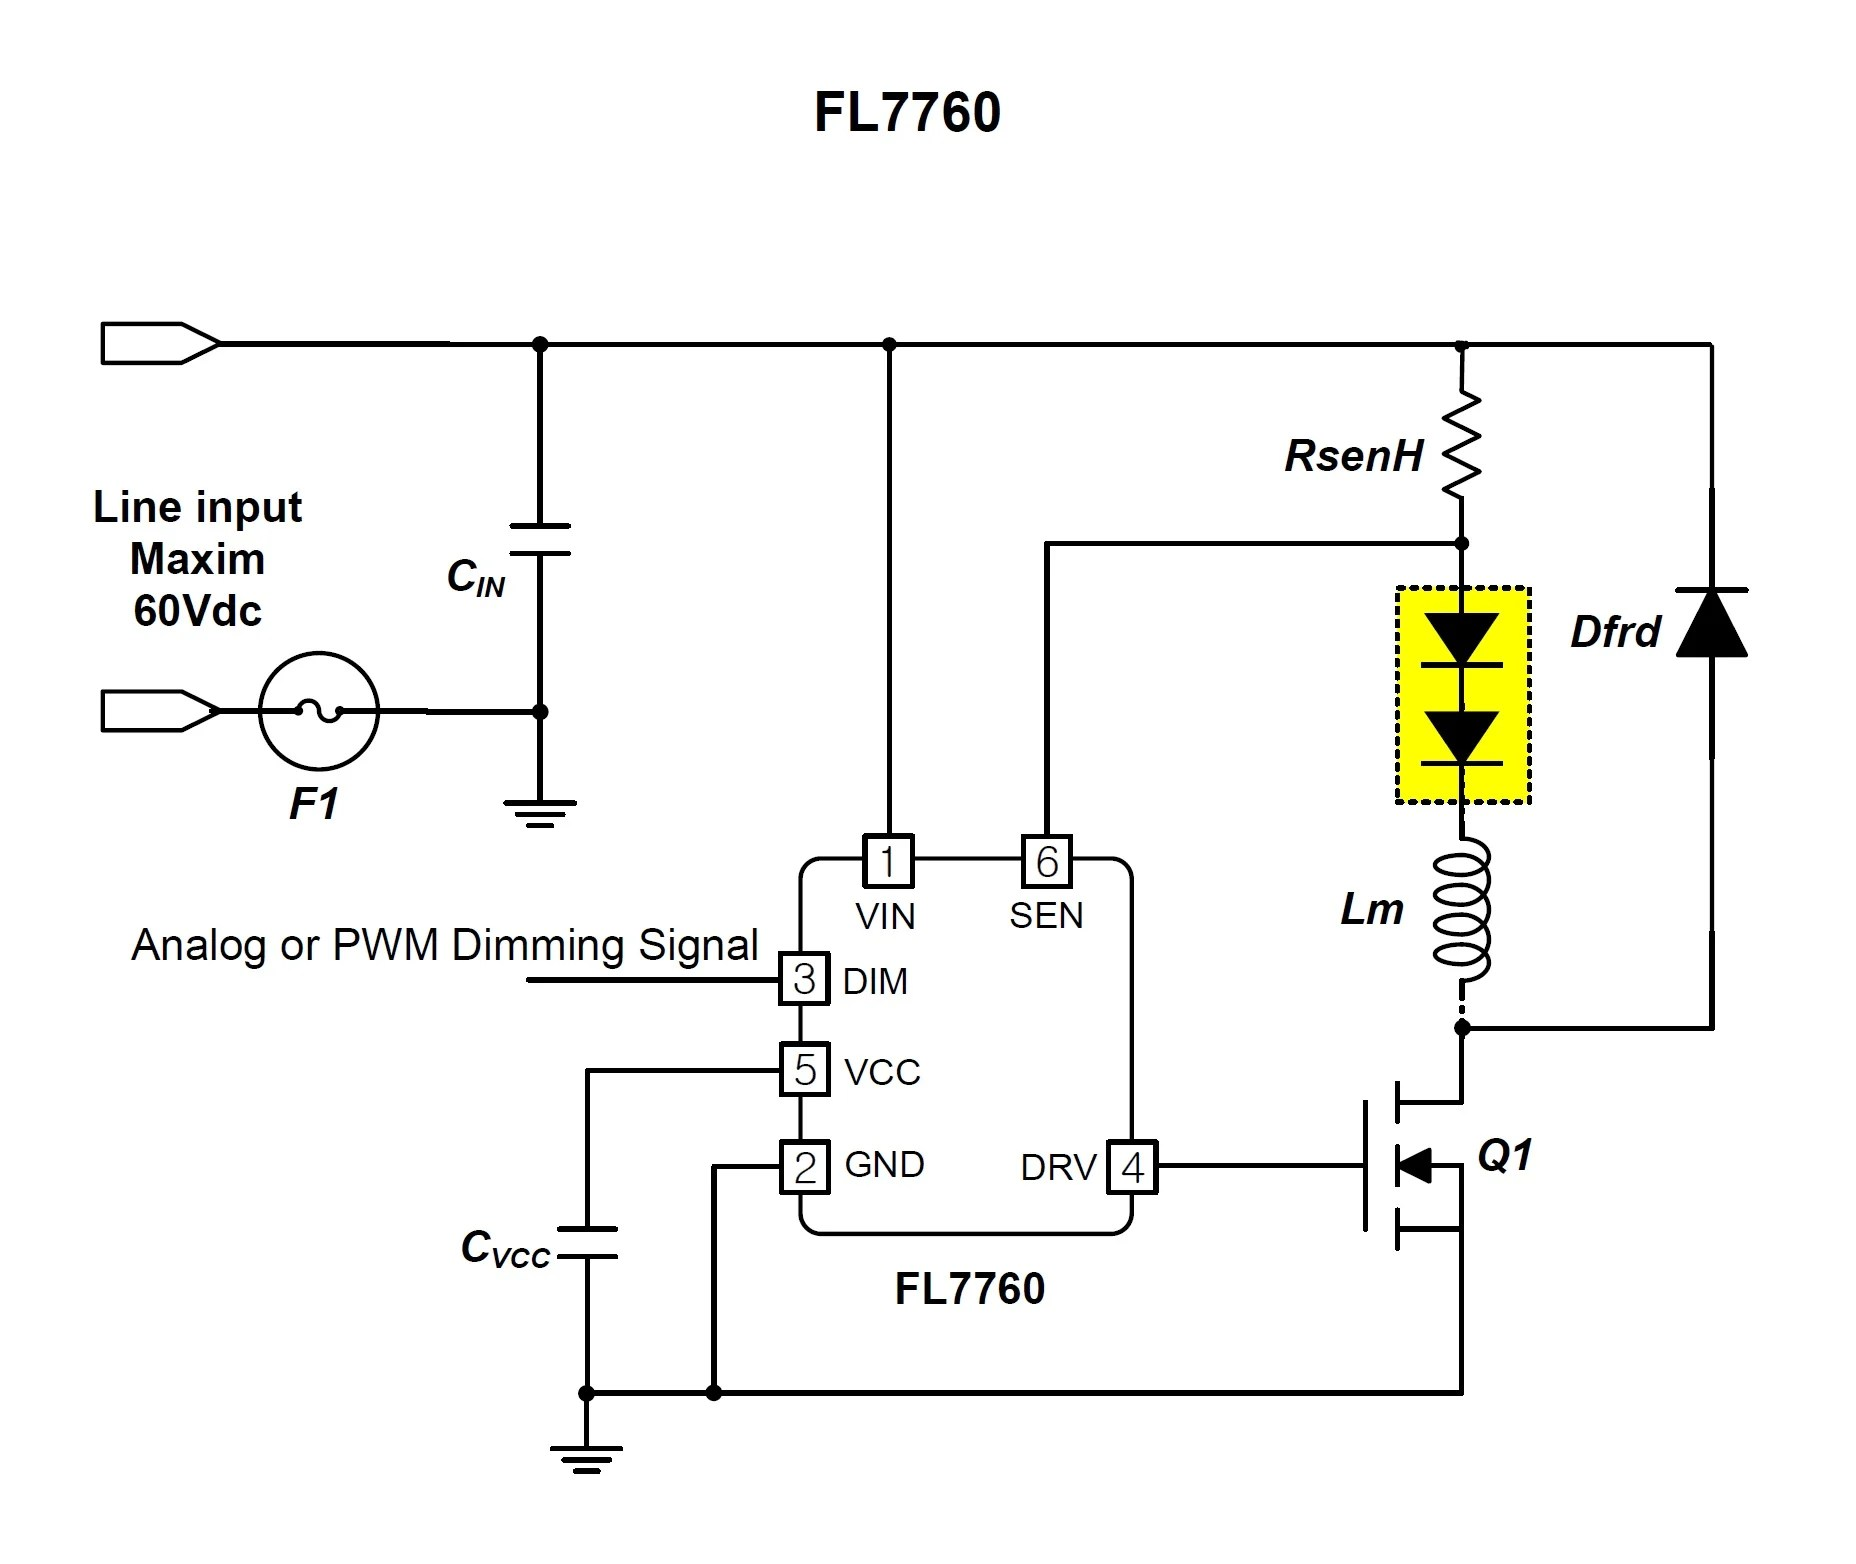 hight resolution of fl7760 application schematic image taken from the datasheet pdf